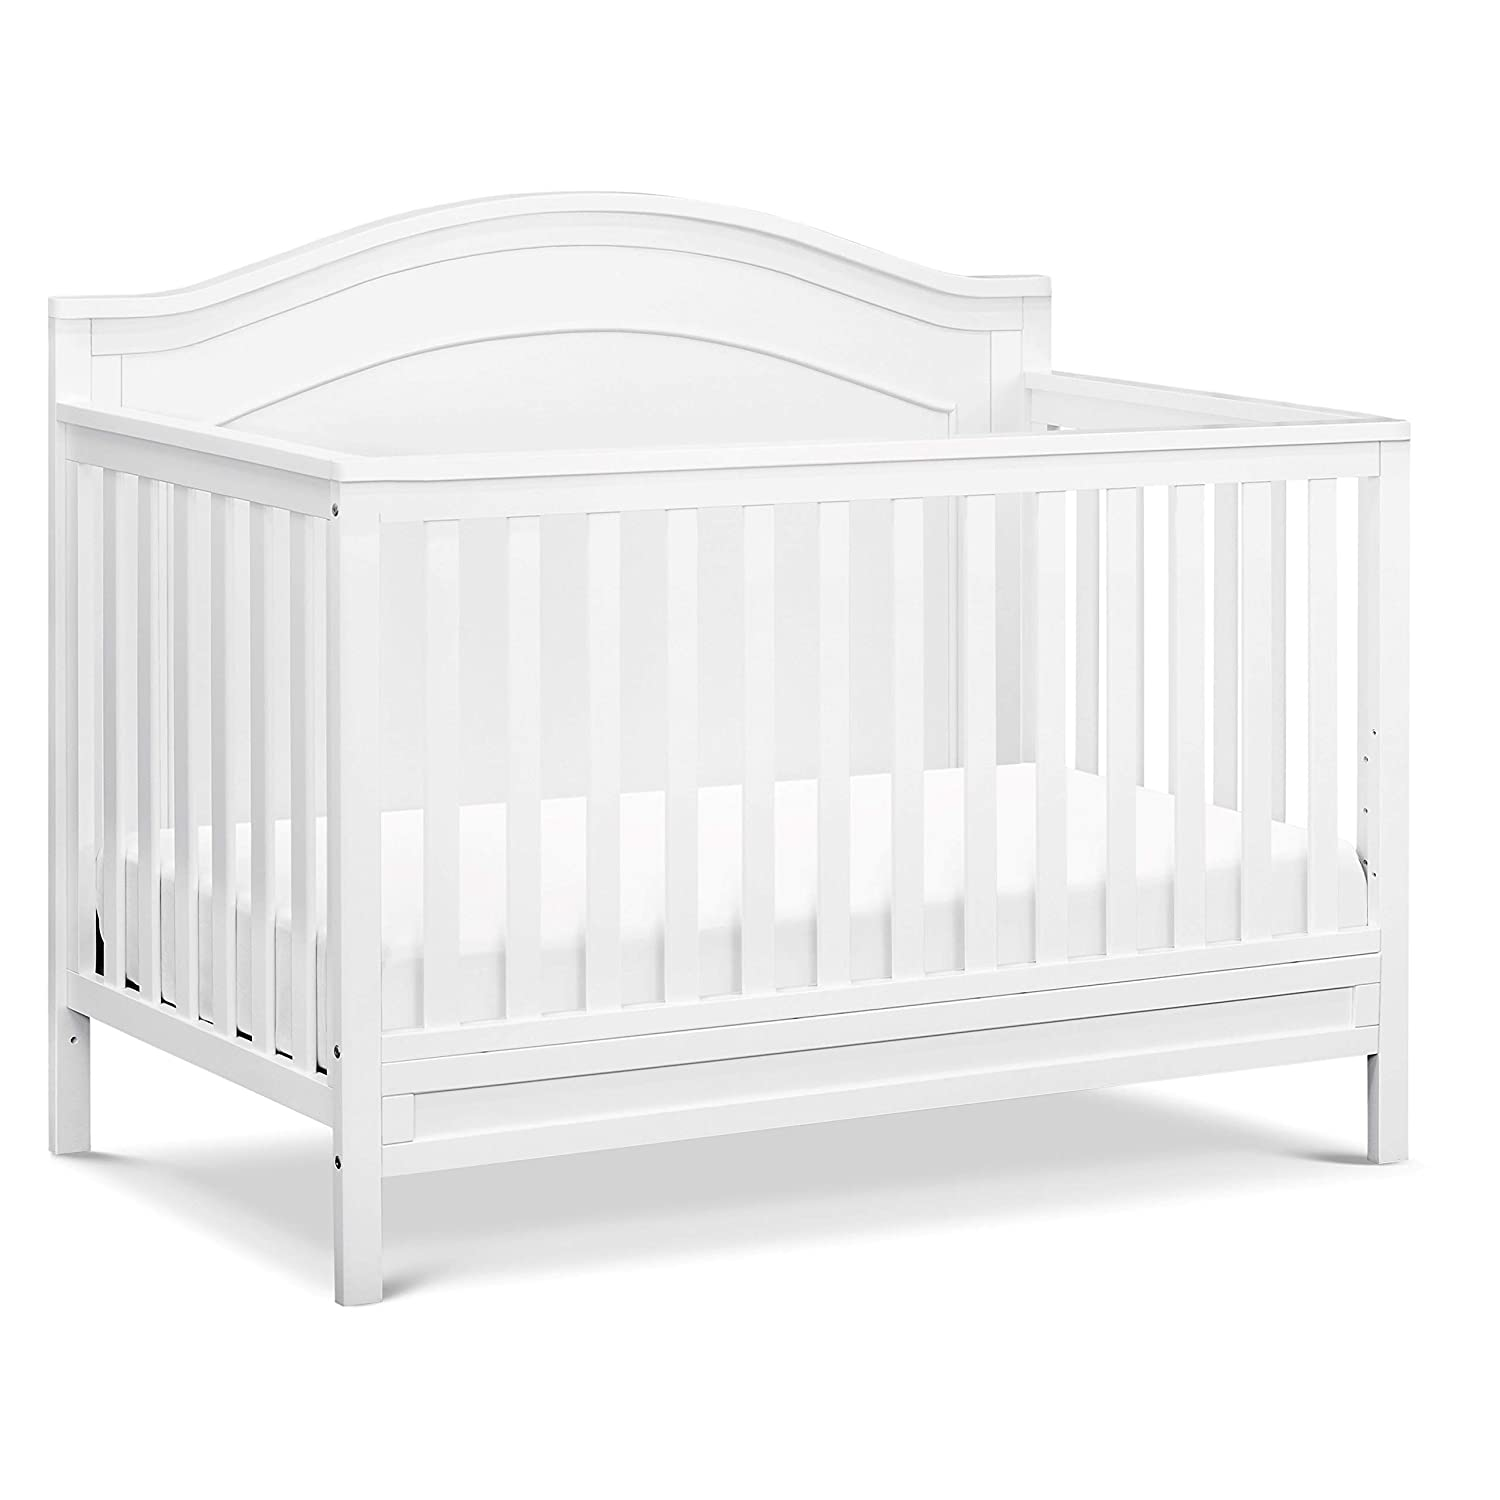 DaVinci Charlie 4-in-1 Convertible Crib in White, Greenguard Gold Certified